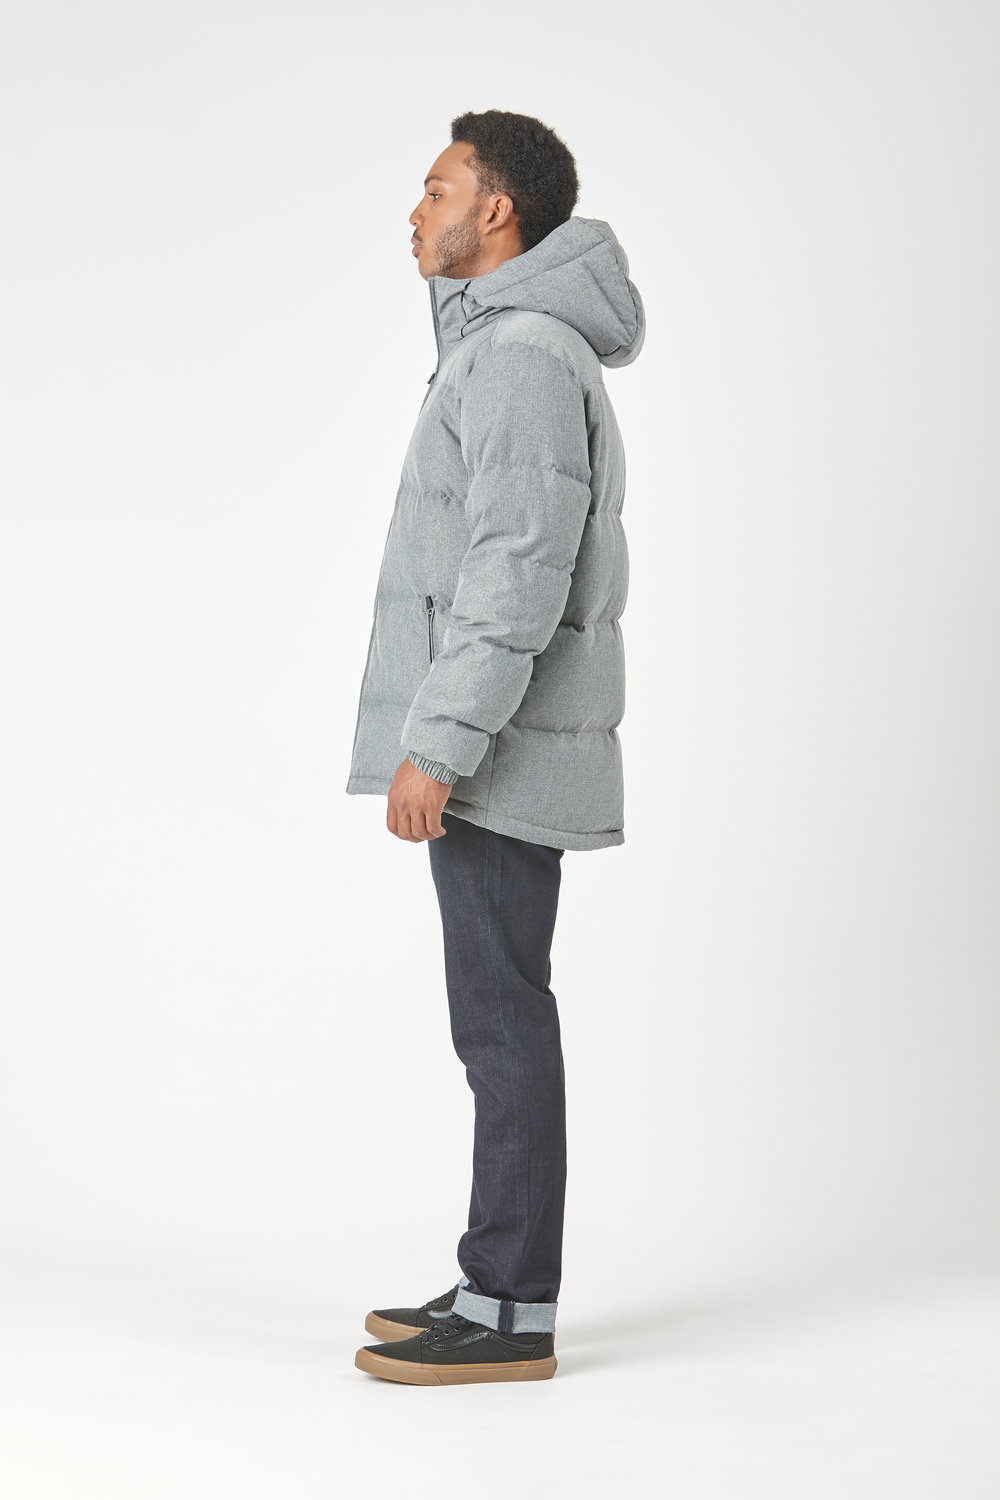 Huffer_OW-17_M-Classic-Down-Jacket_Grey-02.jpg